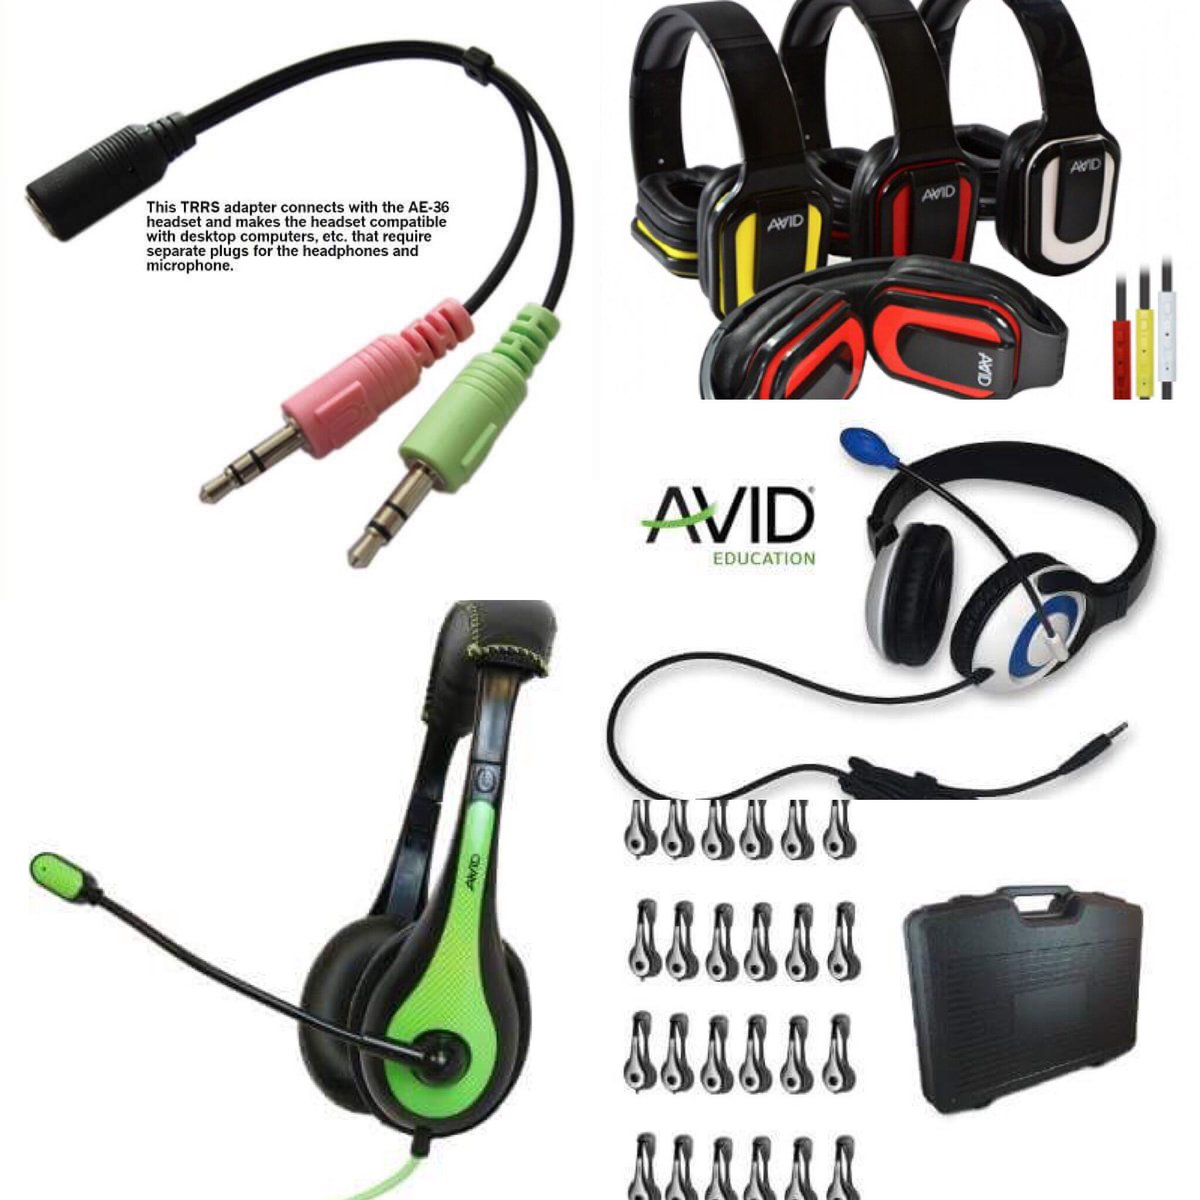 "Looking for #headphones & #headsets to meet any #classroom need?😎🍏 #AvidEducation ""a headphone for every application "" 🍏💻  https://www.encoredataproducts.com/   #encoredataproducts #education #purchasing #procurement #ipad #chromebook #headsets #headphones #earbuds #schoolsupplies"